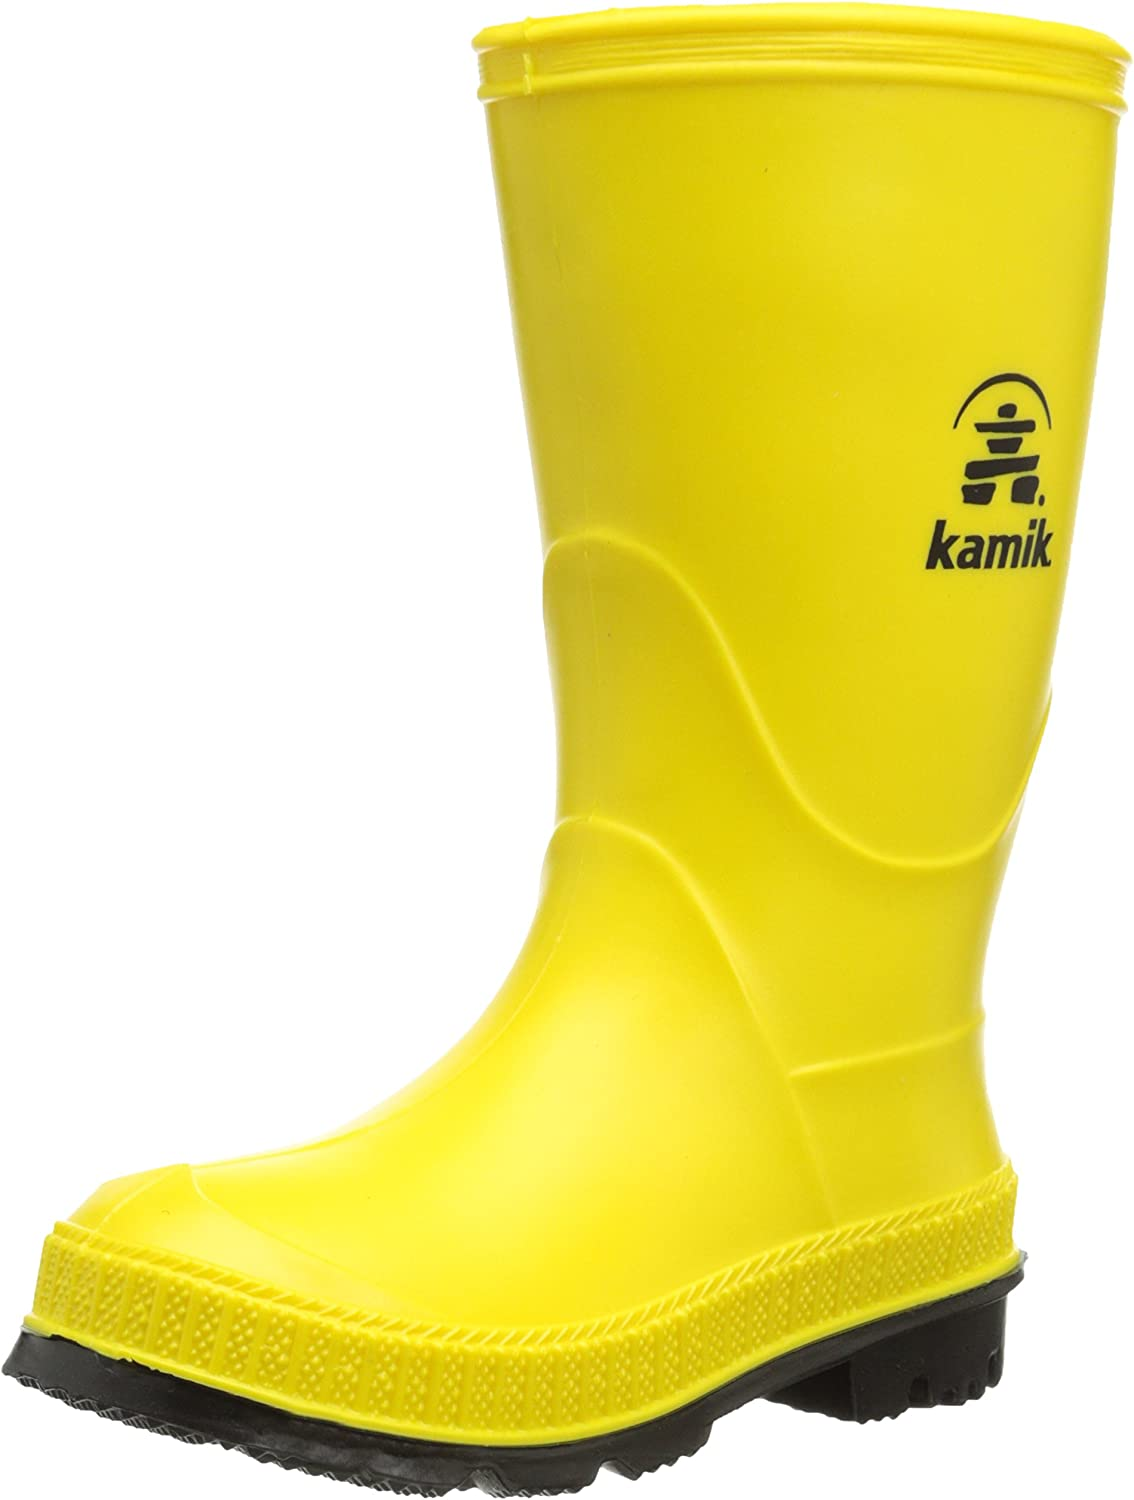 Kamik Stomp Rain Boot Chicago Mall Kid Big Outlet ☆ Free Shipping Toddler Little